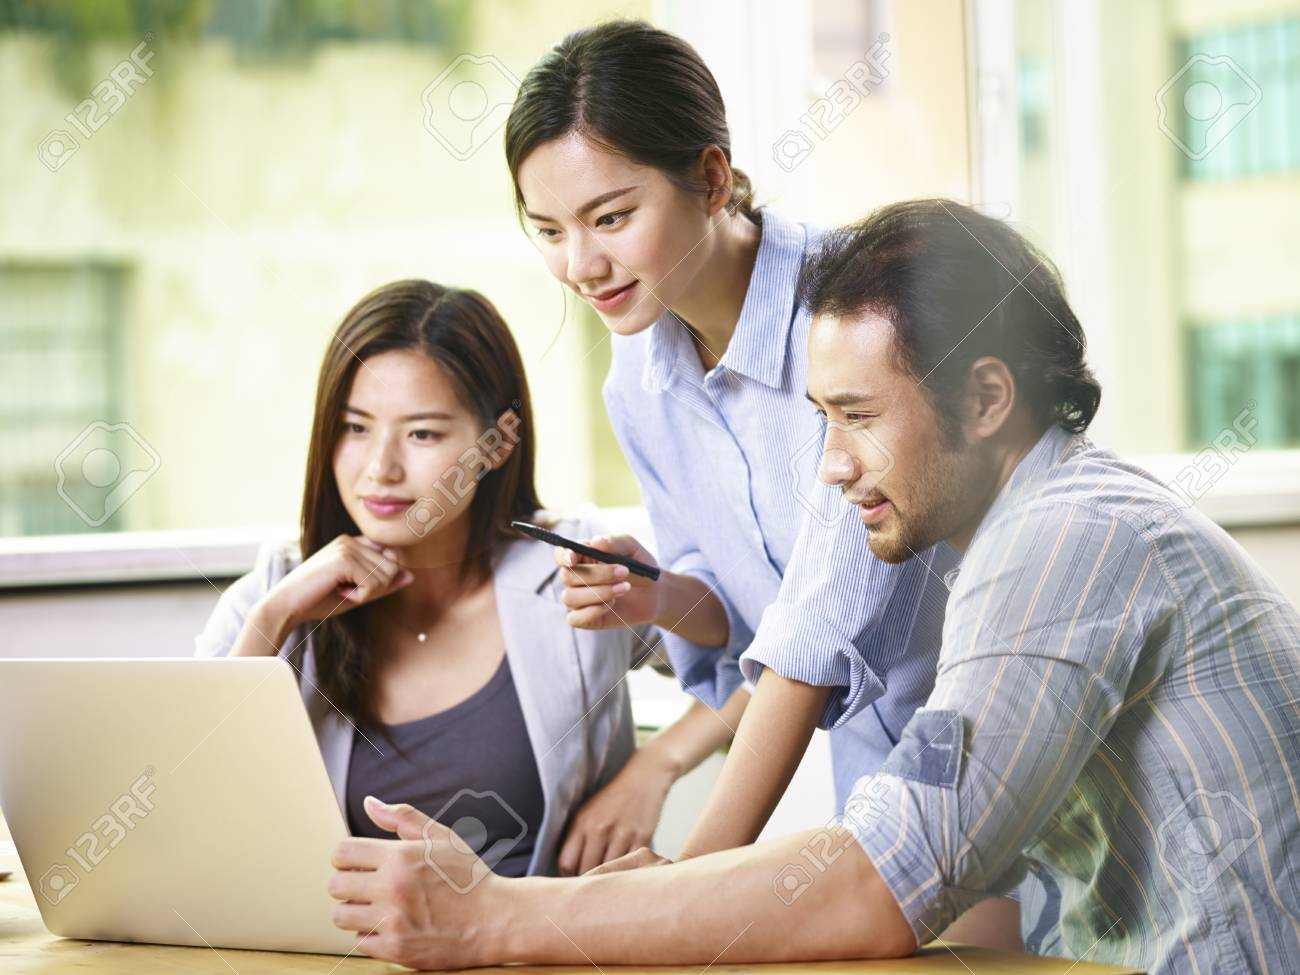 team of young asian business people in casual wear working together in office using laptop computer. - 91514228